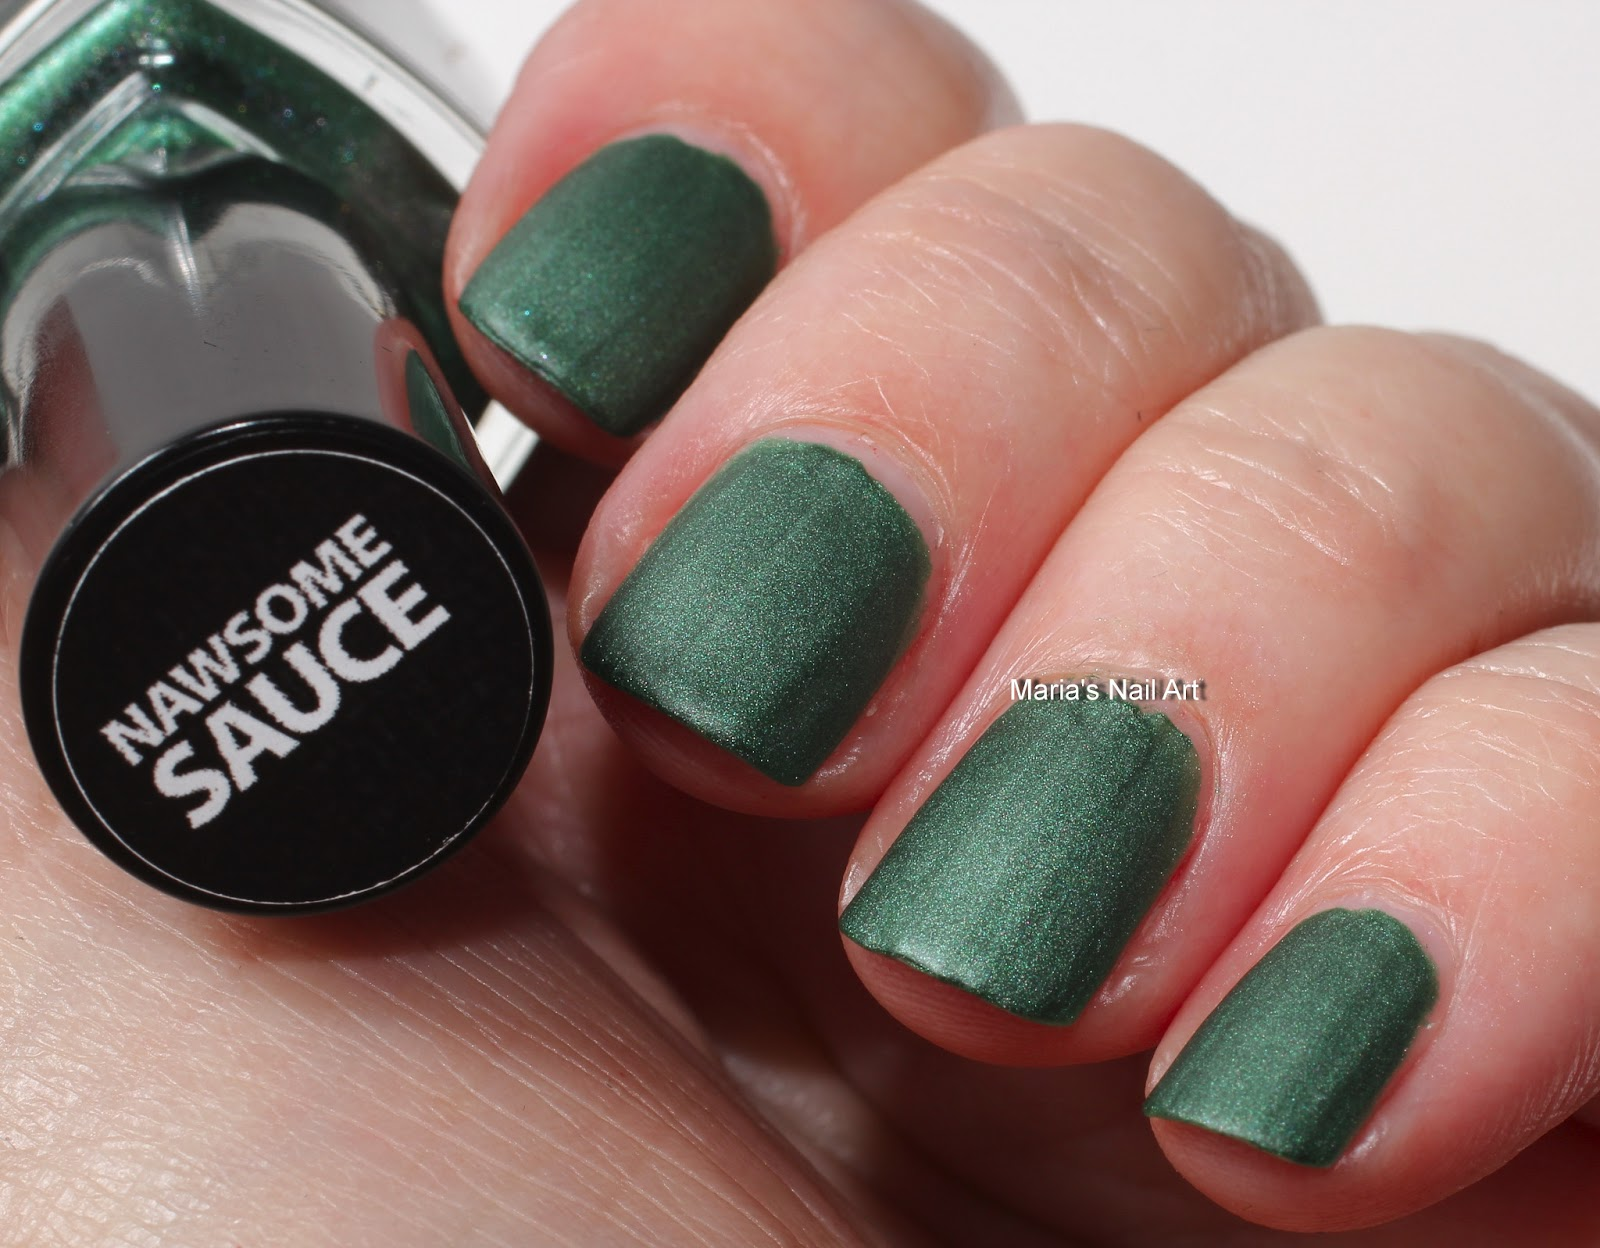 Marias Nail Art and Polish Blog: Manglaze swatches: Lesbihonest and ...